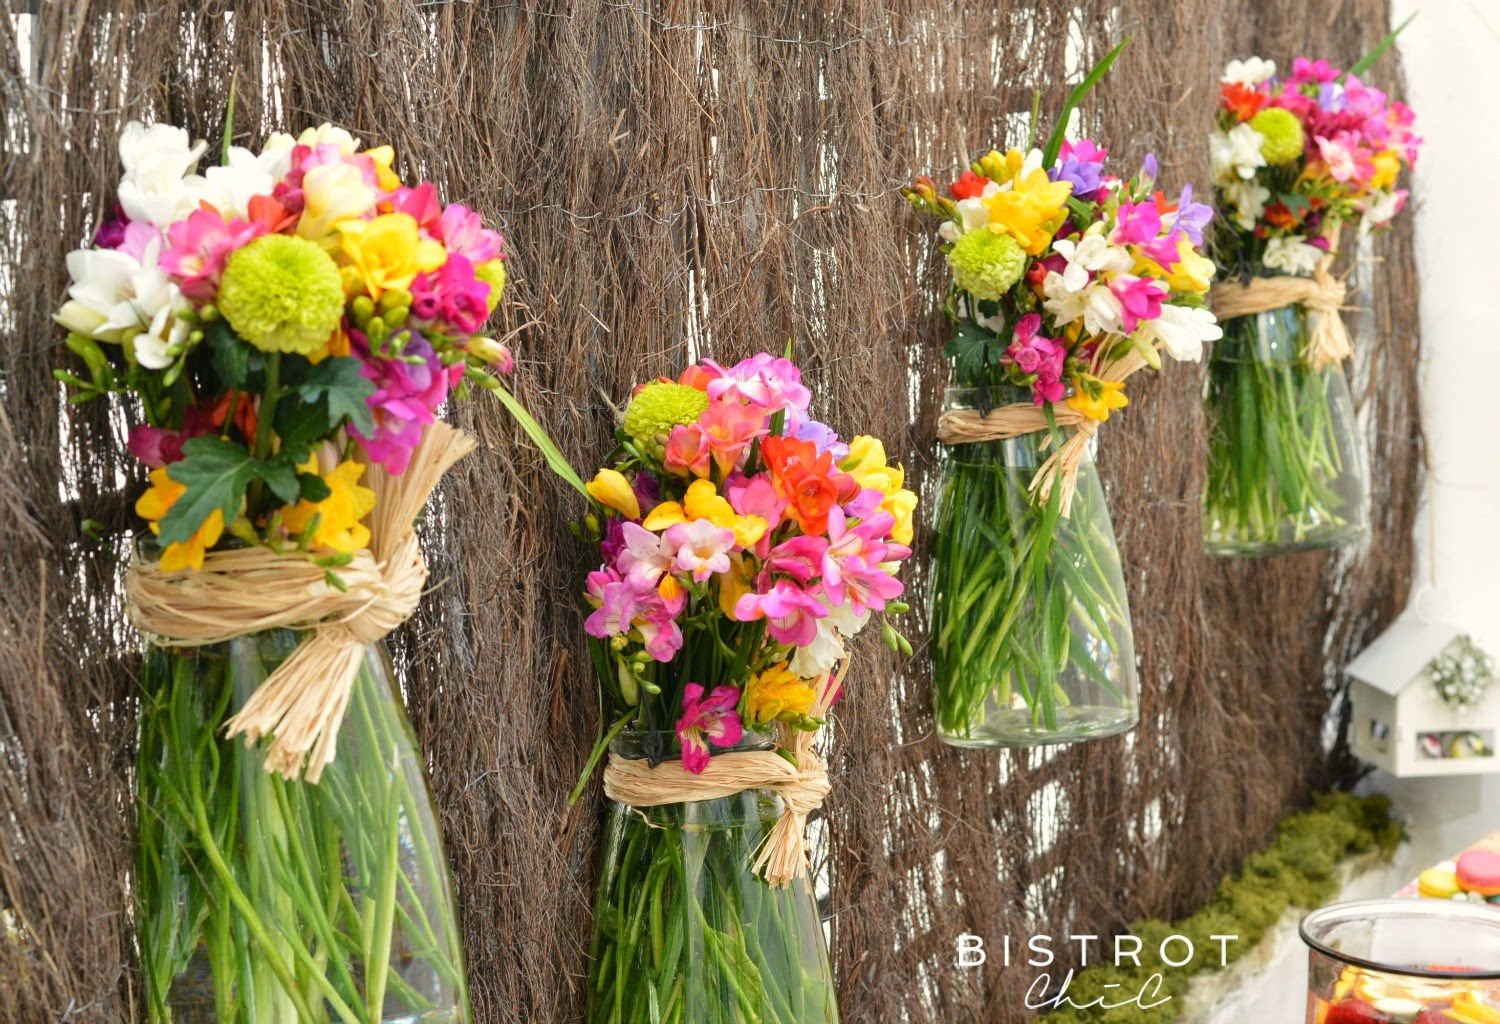 Spring Party Flowers Backdrop by BistrotChic